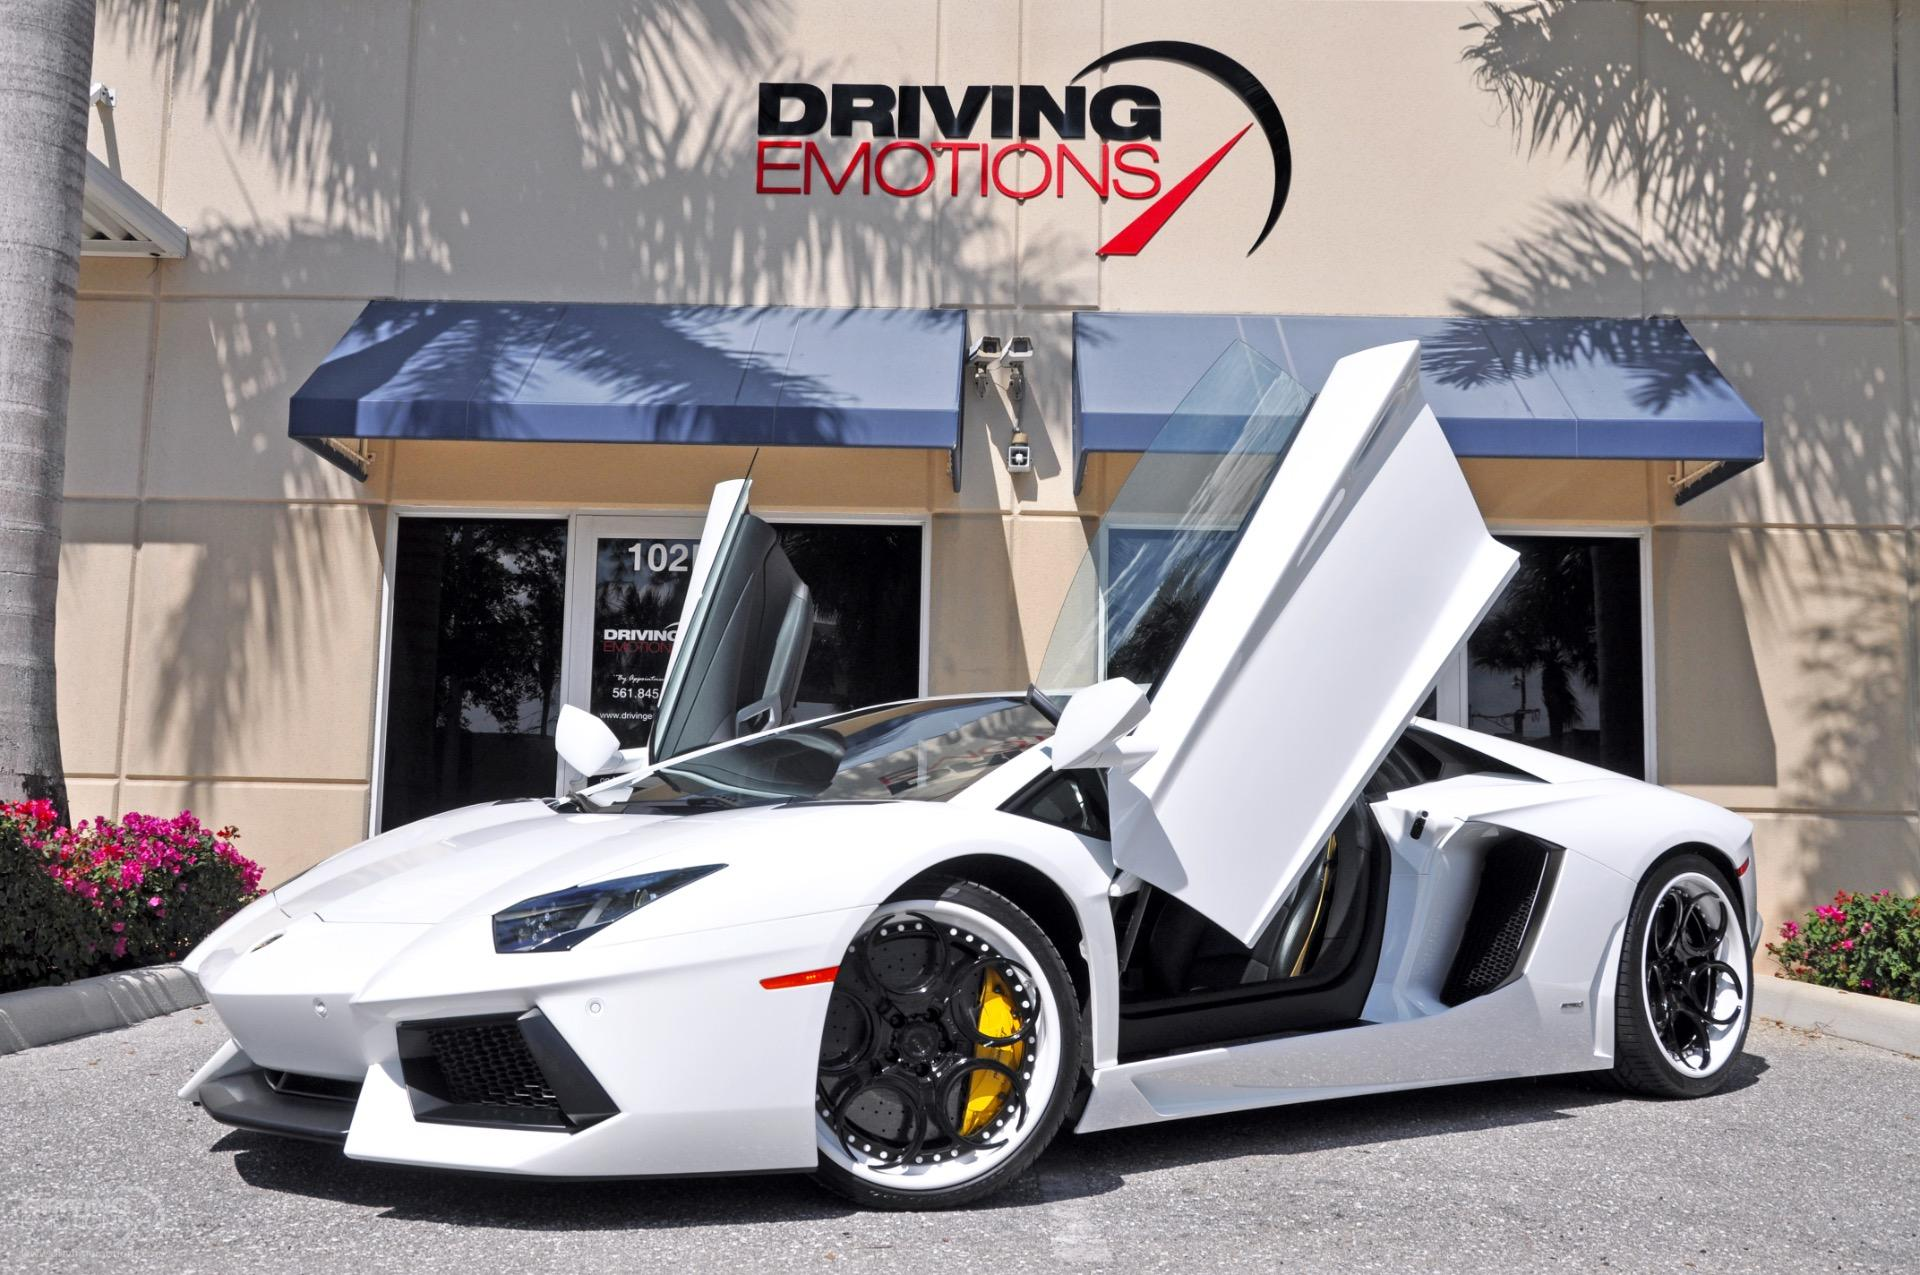 2012 Lamborghini Aventador LP700-4 Coupe 2-Door: 2012 LAMBORGHINI AVENTADOR LP700-4 COUPE! ADV1 WHEELS! SPORT EXHAUST! LOW MILES!